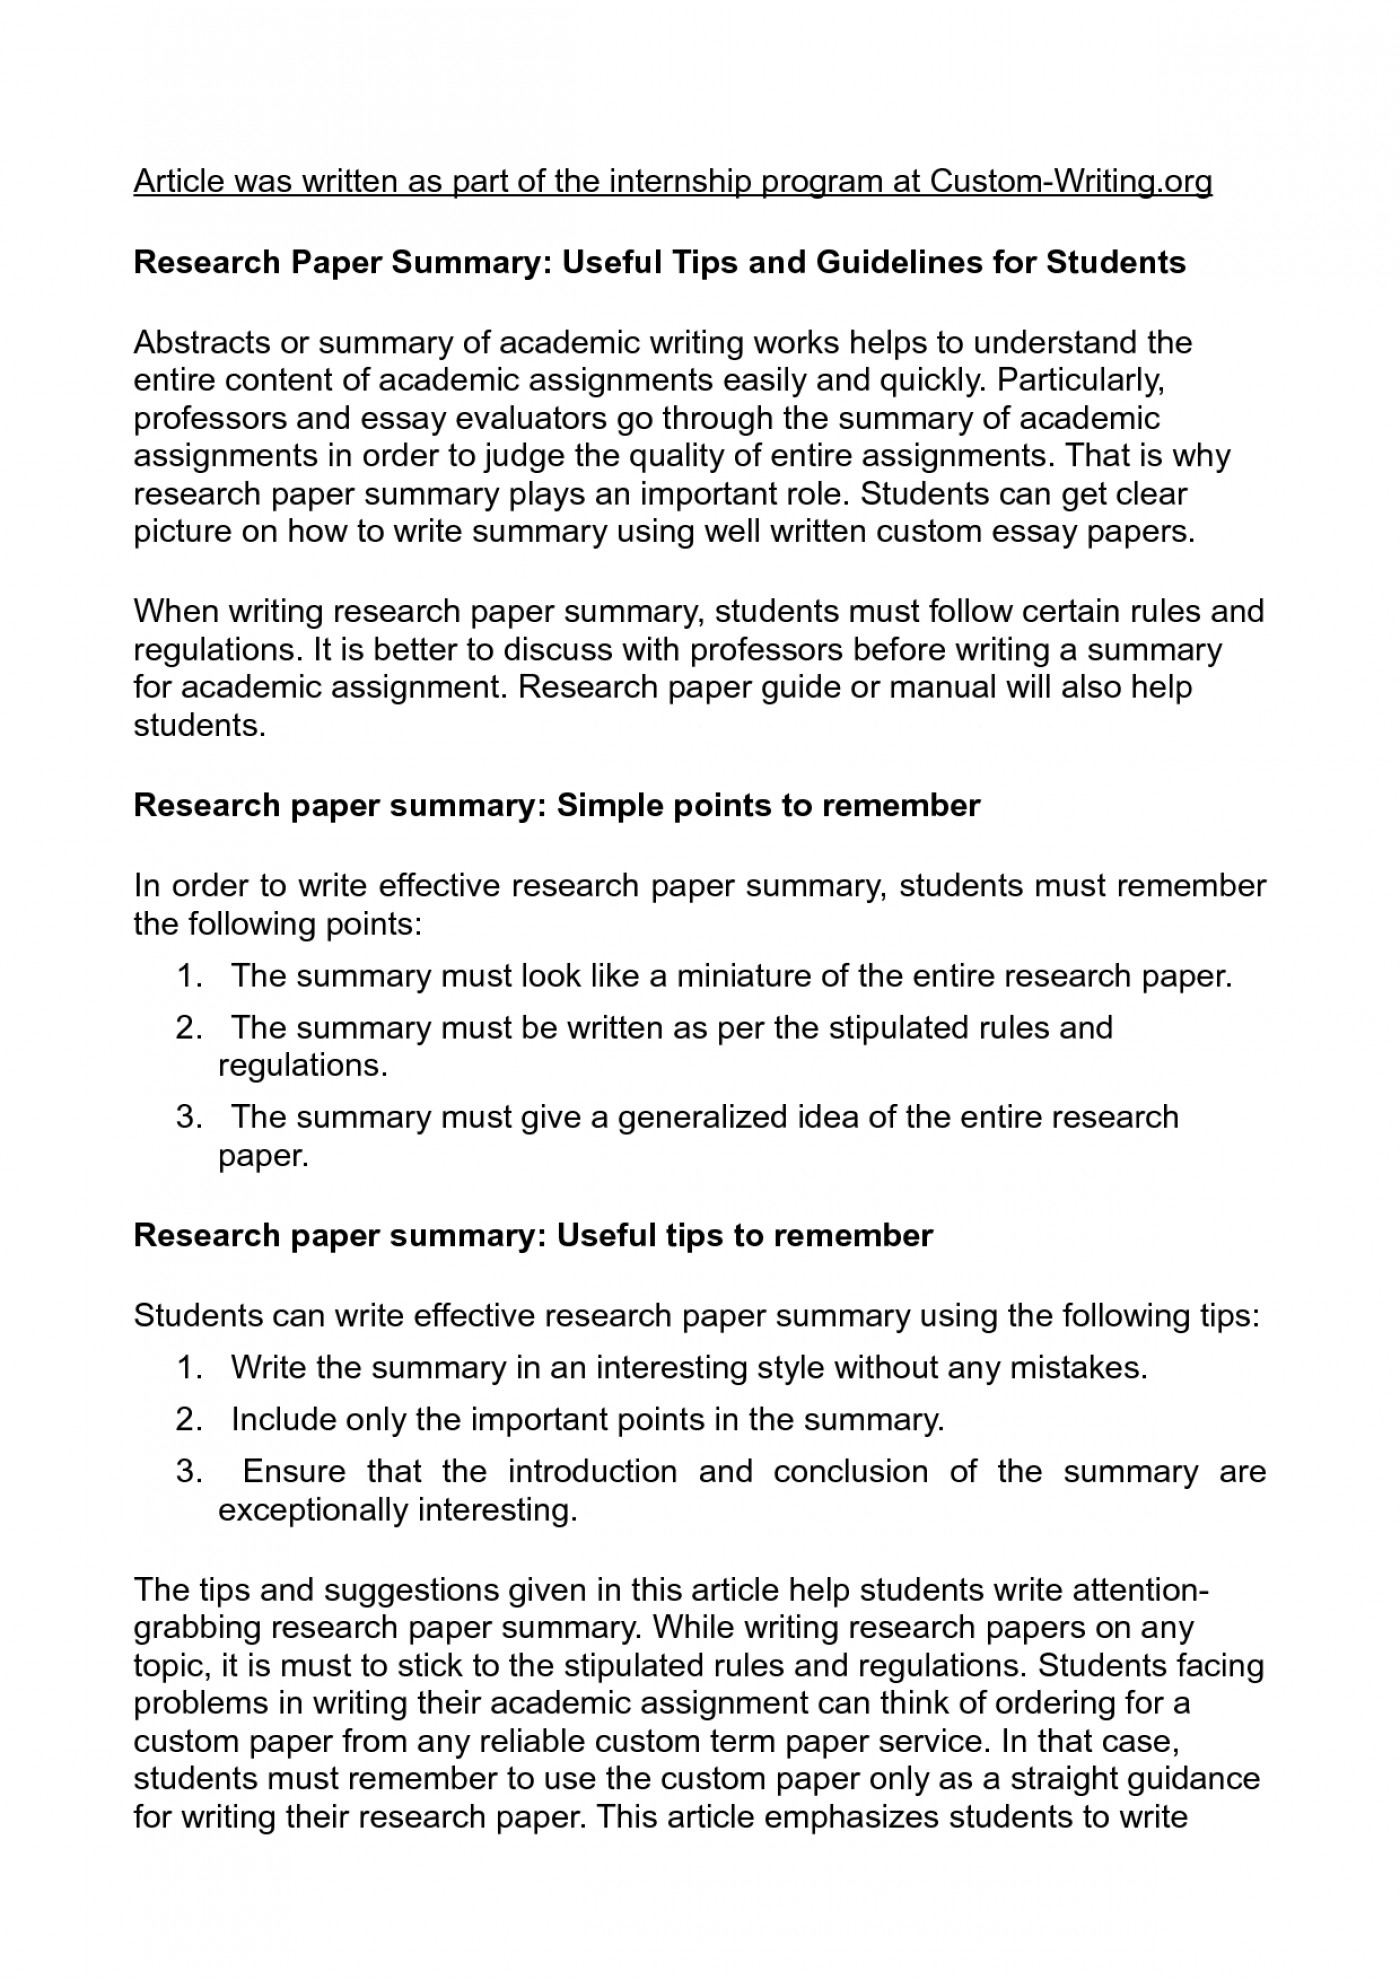 006 Essay Example Adhd Research Papers Brain Scan College About Writing Paper Summary 5 Impressive Conclusion Examples Thesis Statement 1400